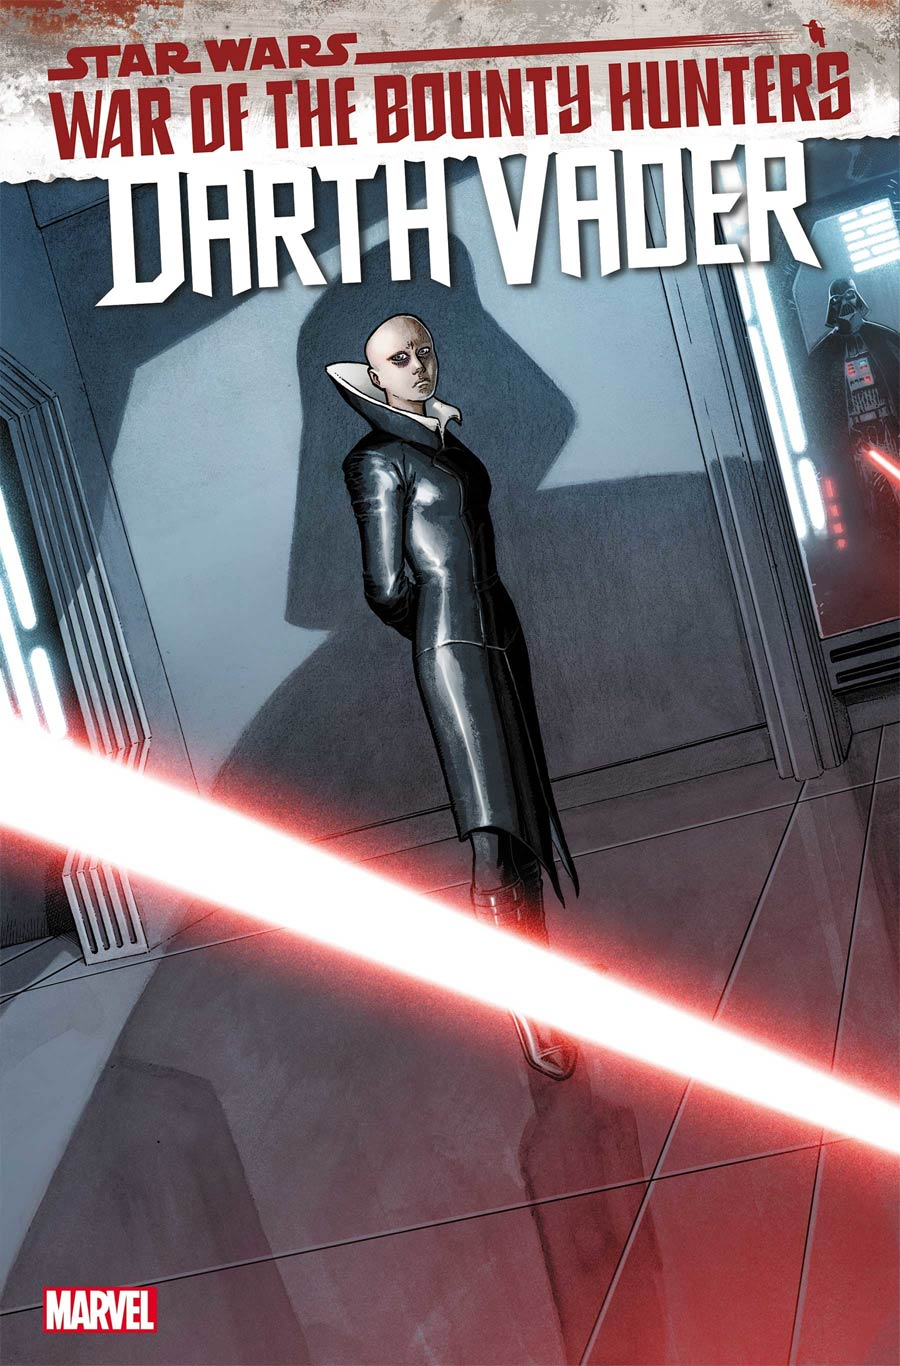 Star Wars Darth Vader #14 Cover A Regular Aaron Kuder Cover (War Of The Bounty Hunters Tie-In)